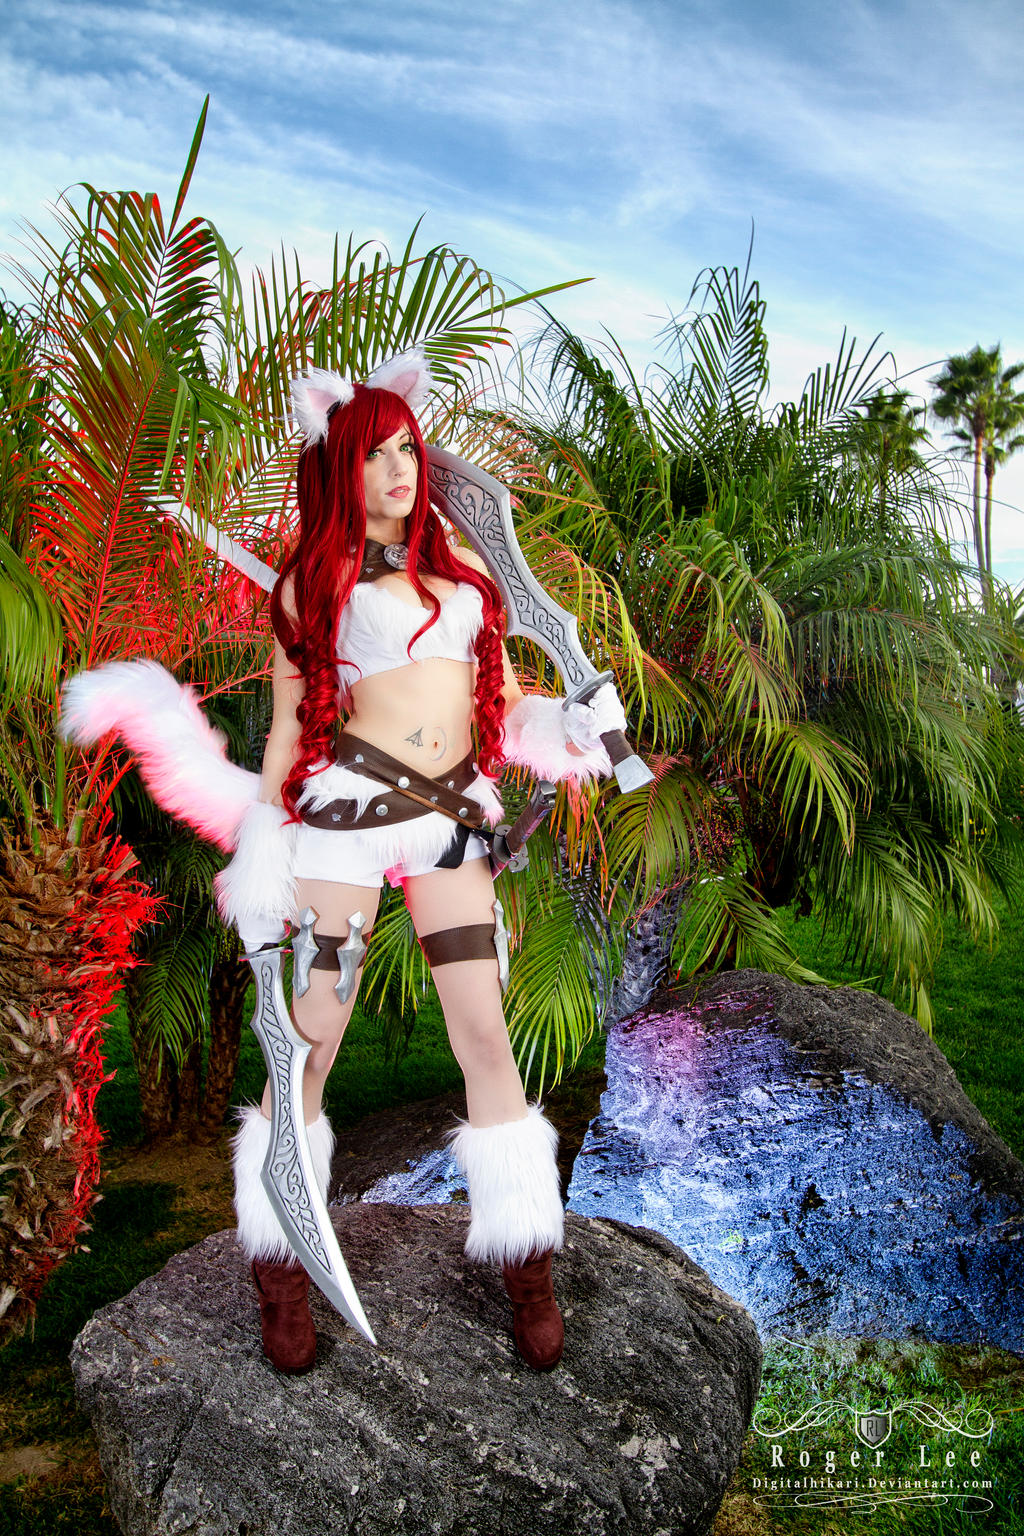 Kitty Cat Katarina - League of Legends by DigitalHikari